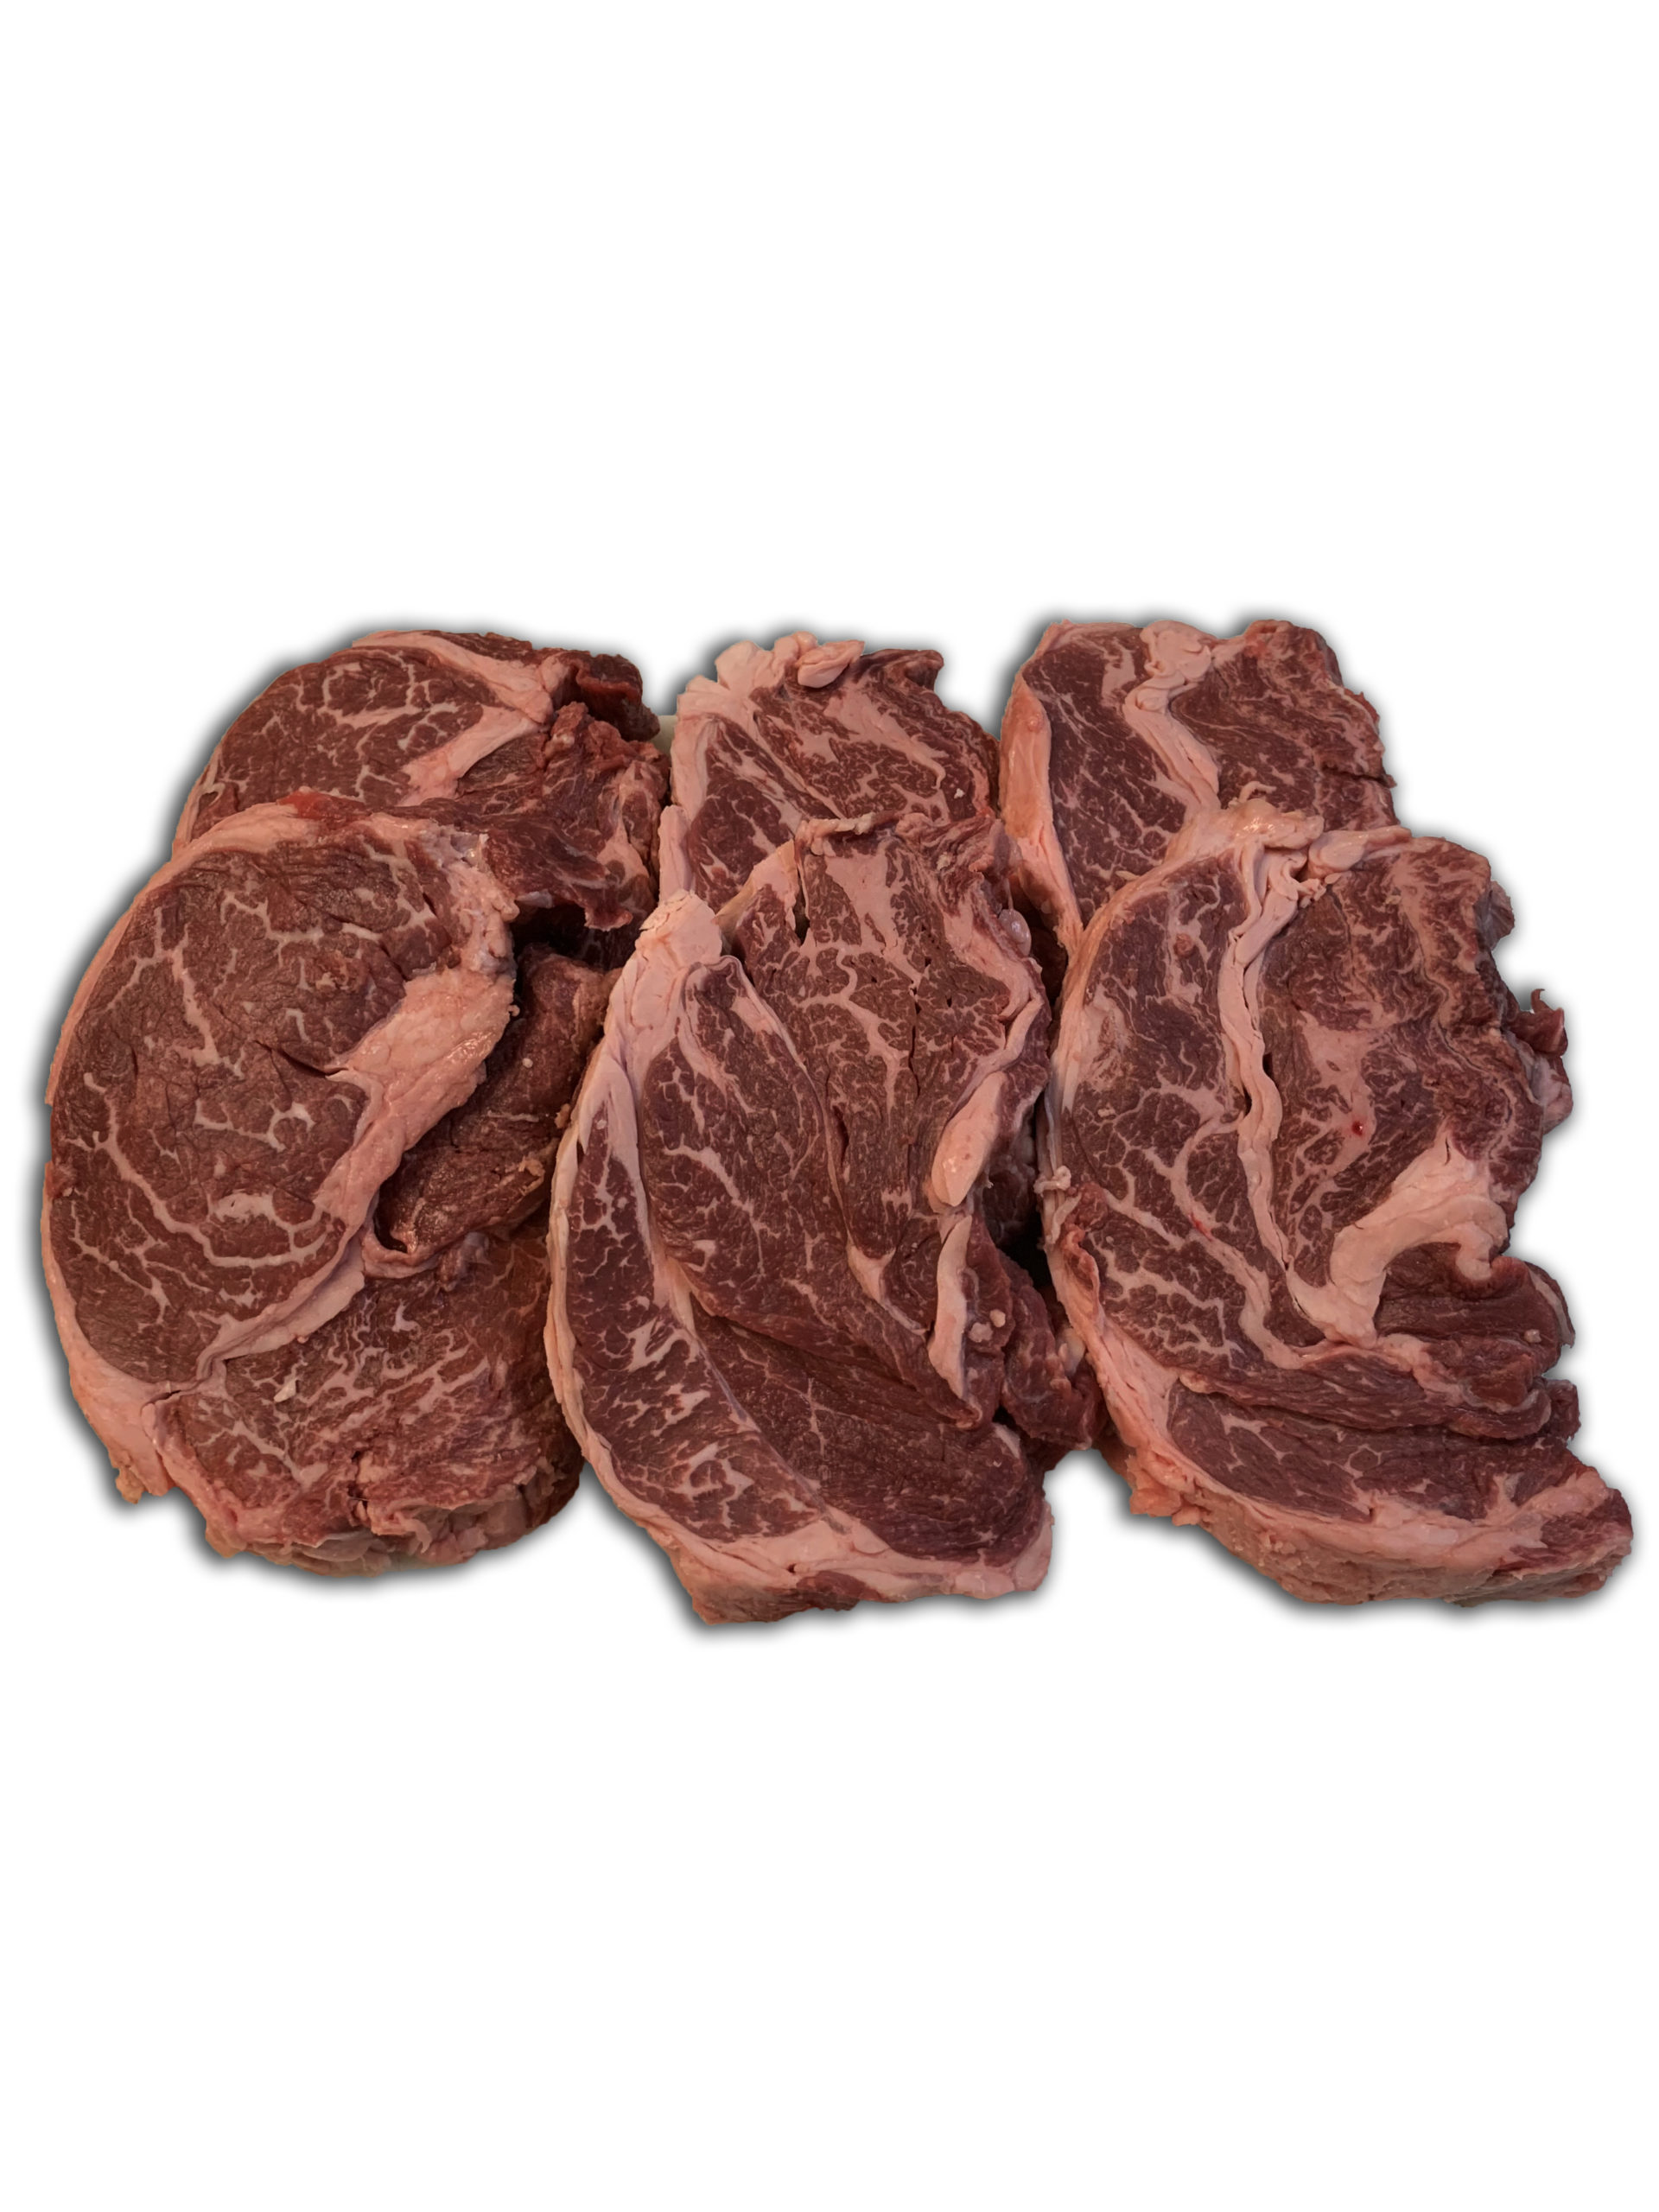 Delmonico Steak, Glatt kosher